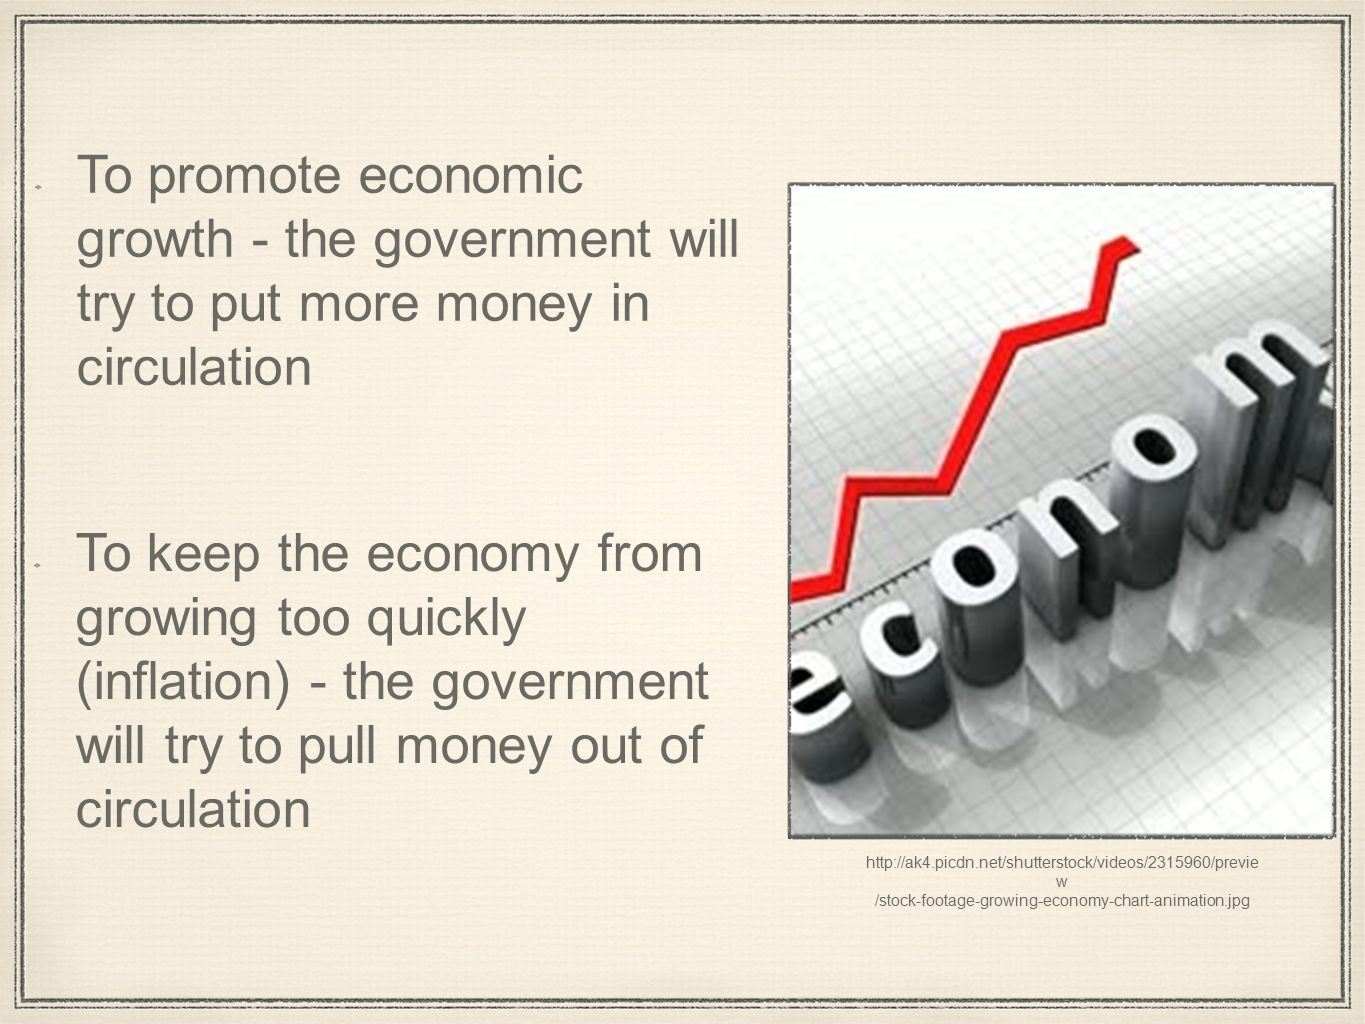 w /stock-footage-growing-economy-chart-animation.jpg To promote economic growth - the government will try to put more money in circulation To keep the economy from growing too quickly (inflation) - the government will try to pull money out of circulation